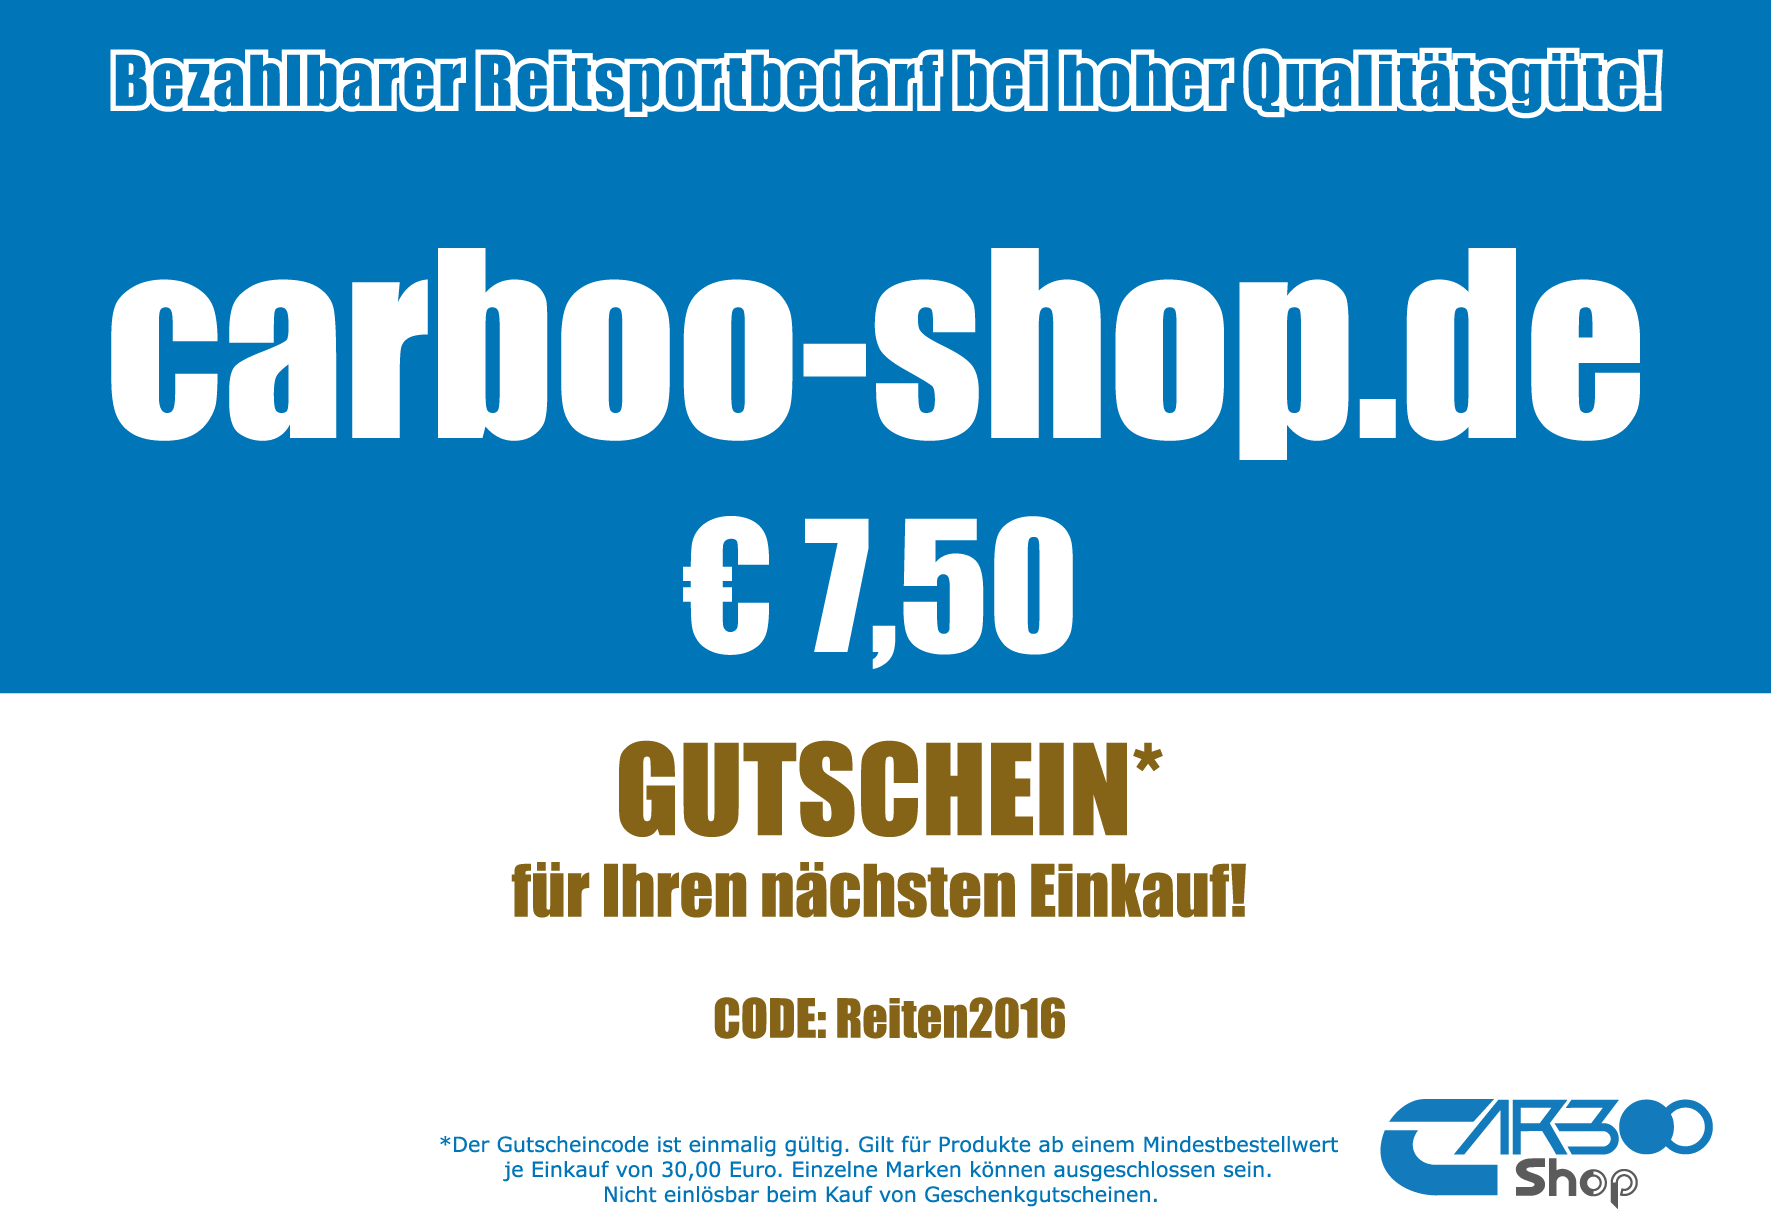 http://www.carboo-shop.de/index.php?route=product/search&search=HV%20Polo